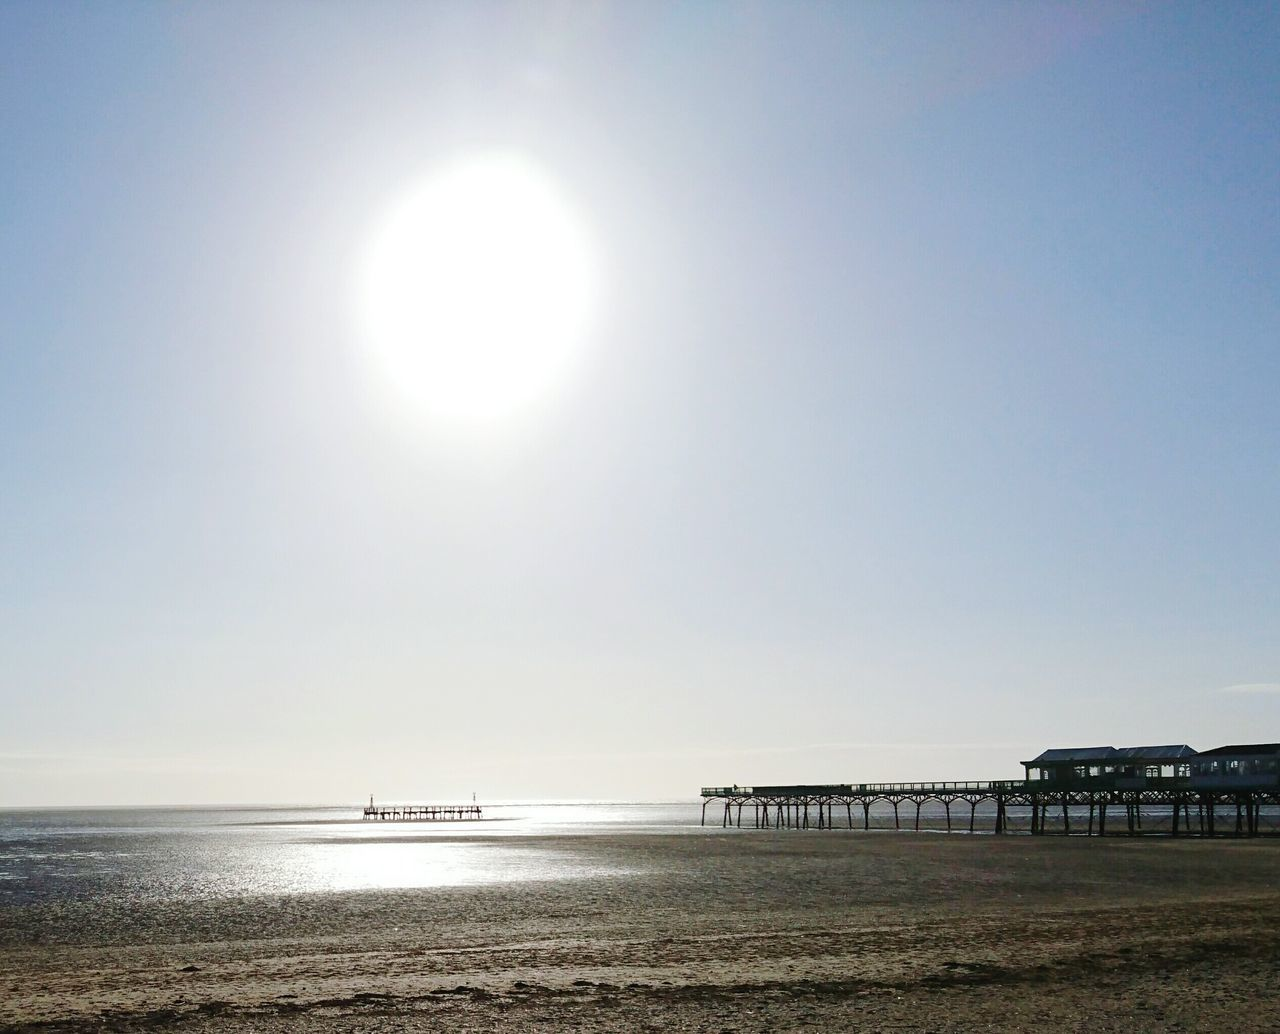 sun, sunlight, sea, water, lens flare, beach, sunny, day, nature, tranquility, outdoors, built structure, scenics, clear sky, bright, beauty in nature, tranquil scene, horizon over water, sand, sky, no people, architecture, travel destinations